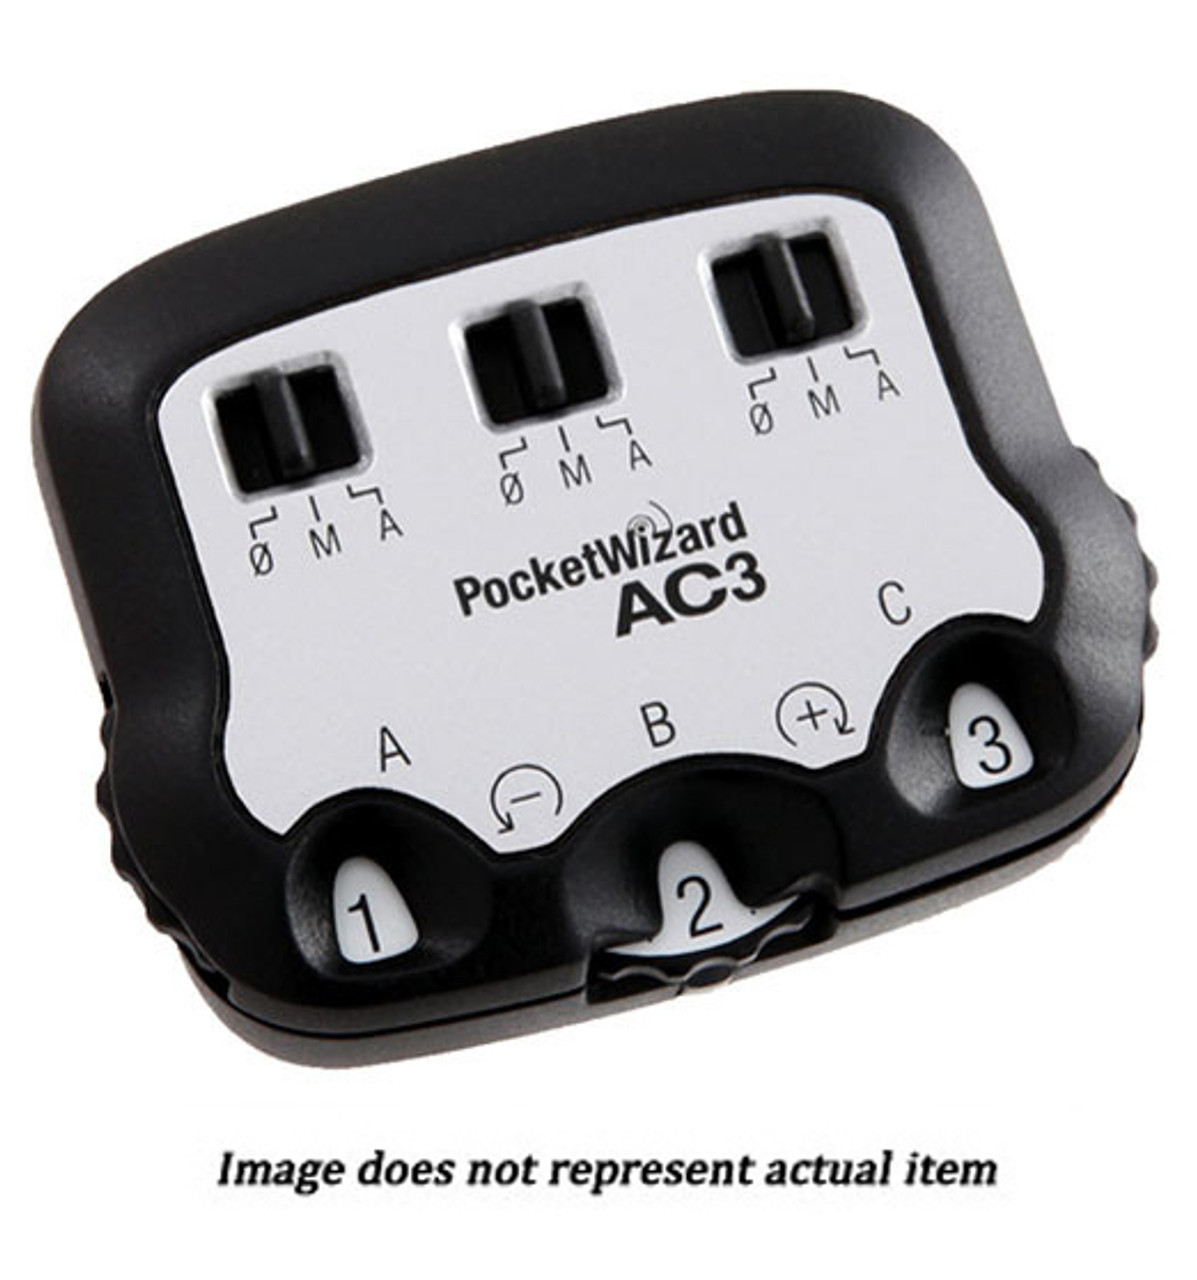 PocketWizard AC3 ZoneController for Nikon (USED) - S/N A3N349177